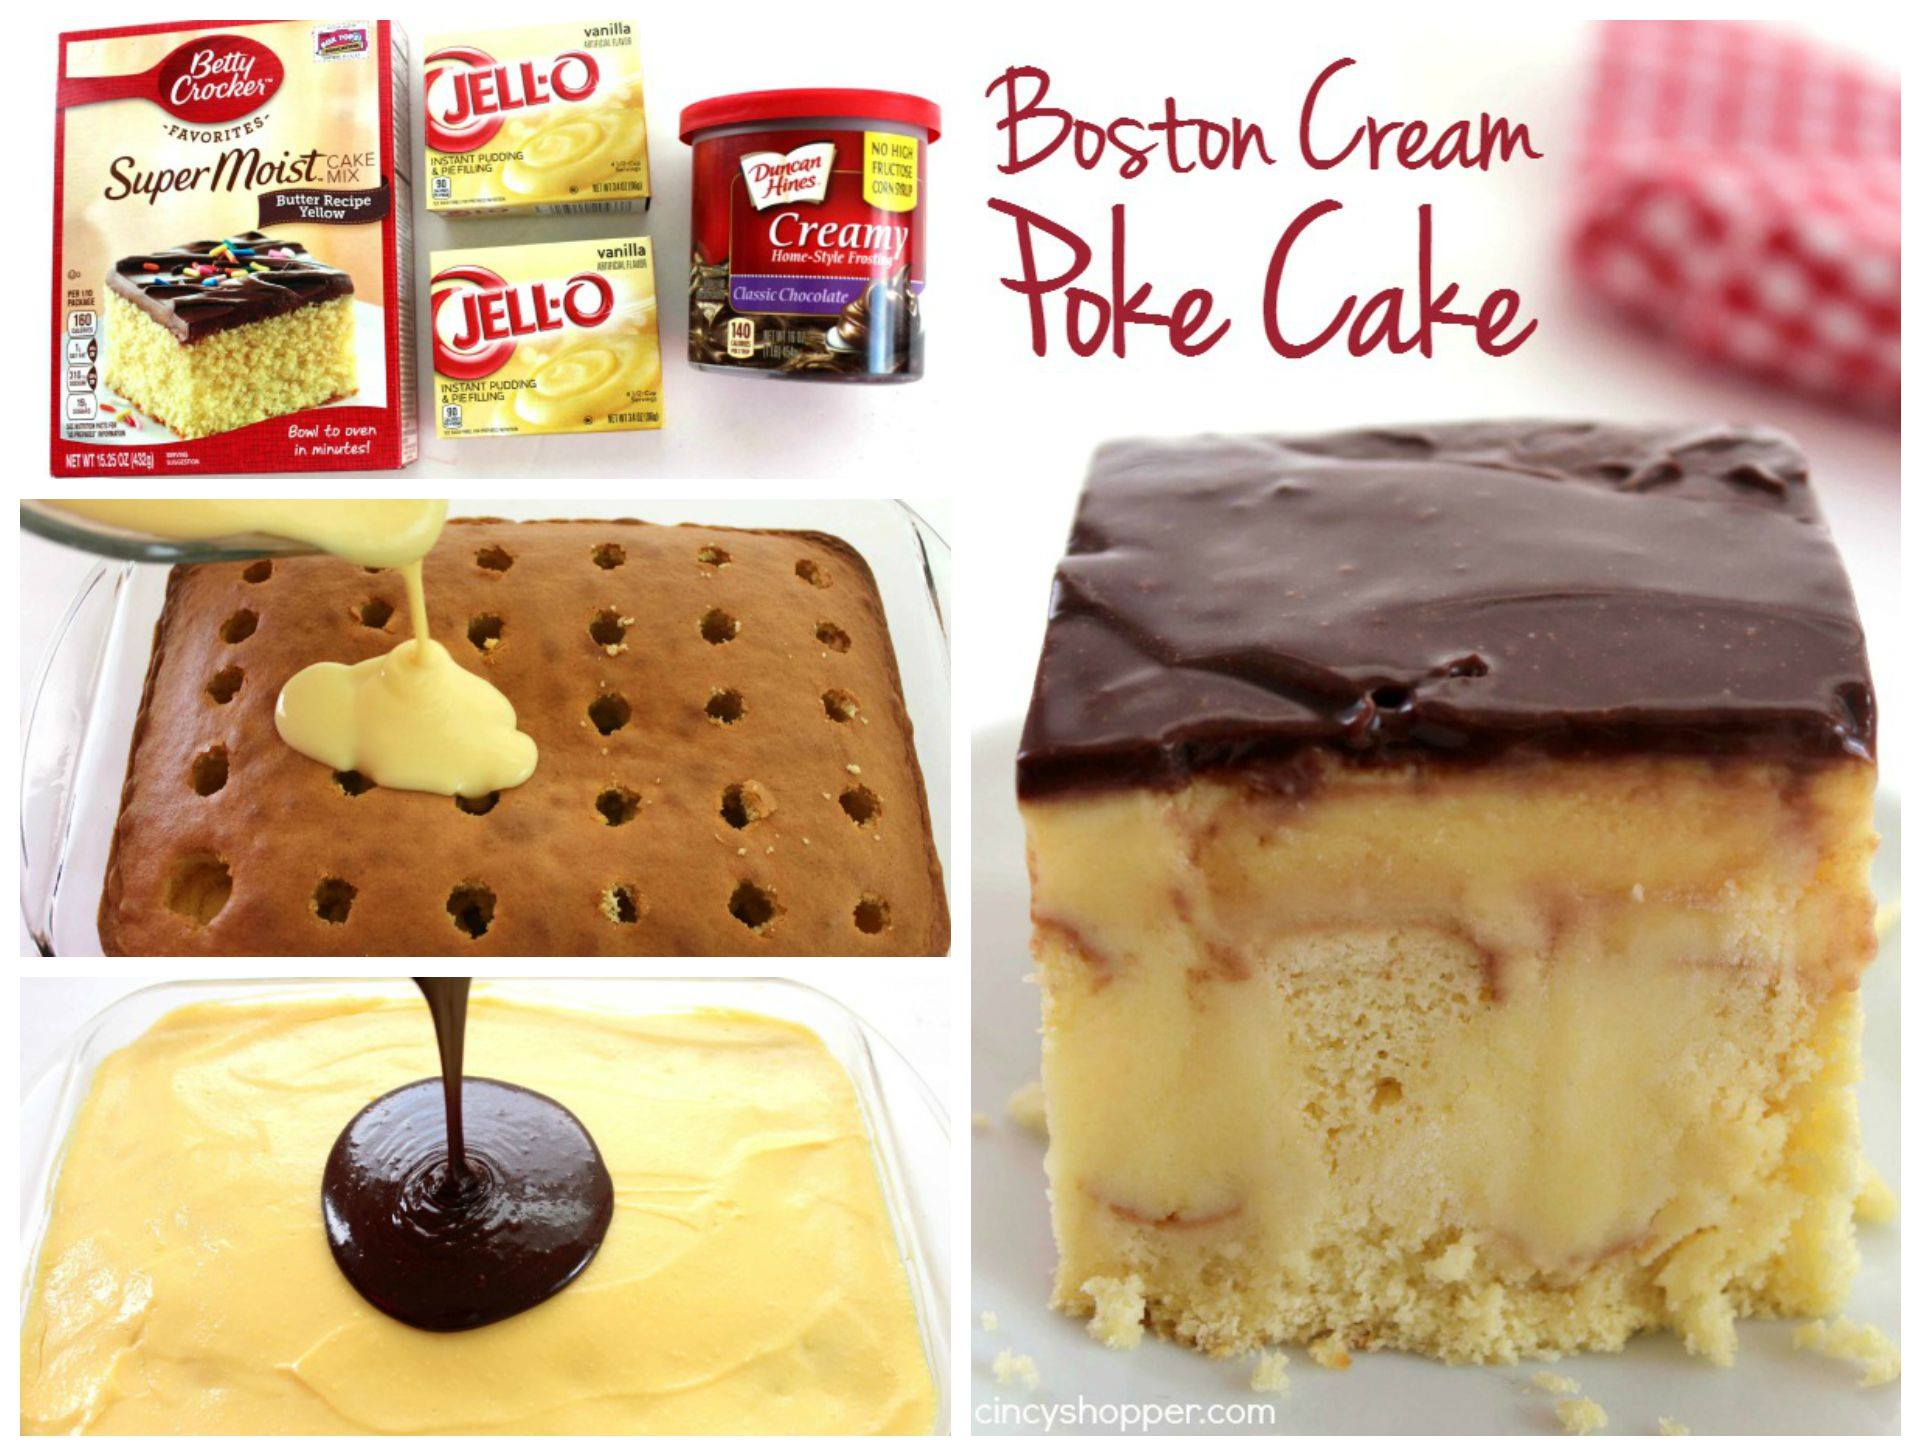 Boston Cream Poke Cake | 25+ chocolate lover dessert recipes